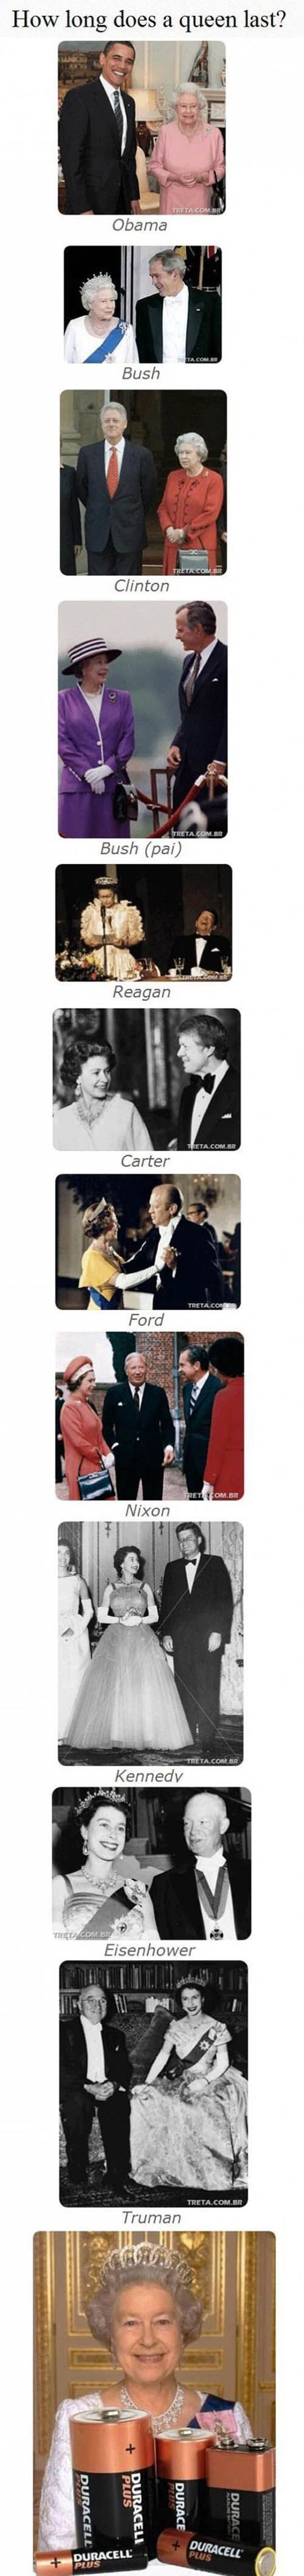 cool-queen-elizabeth-usa-presidents-old